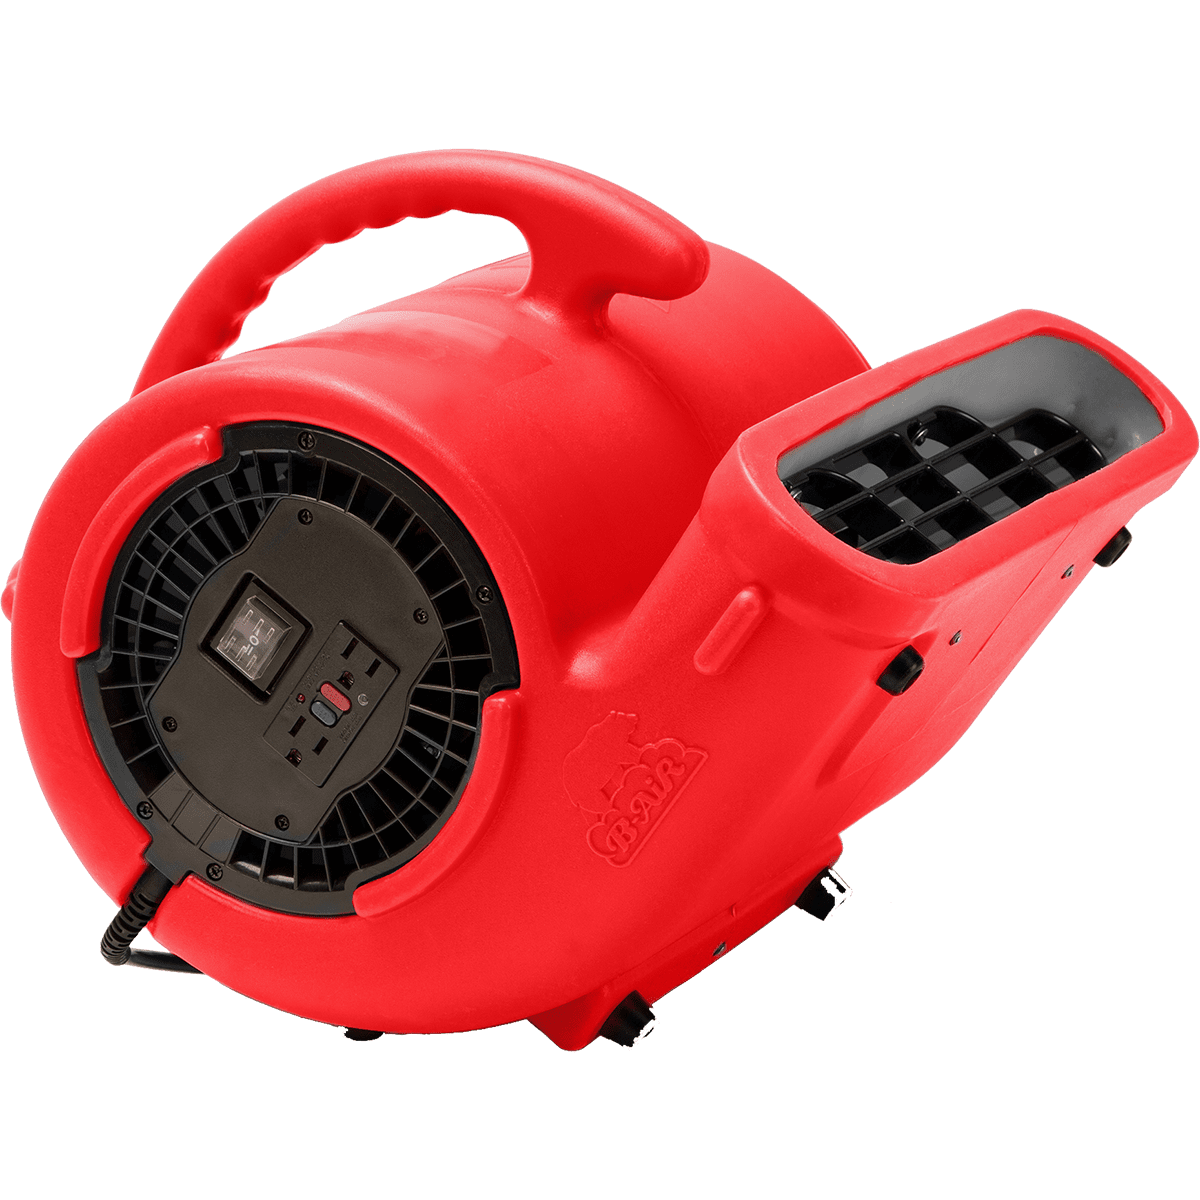 B-air Vent Vp-33 Air Mover - Red